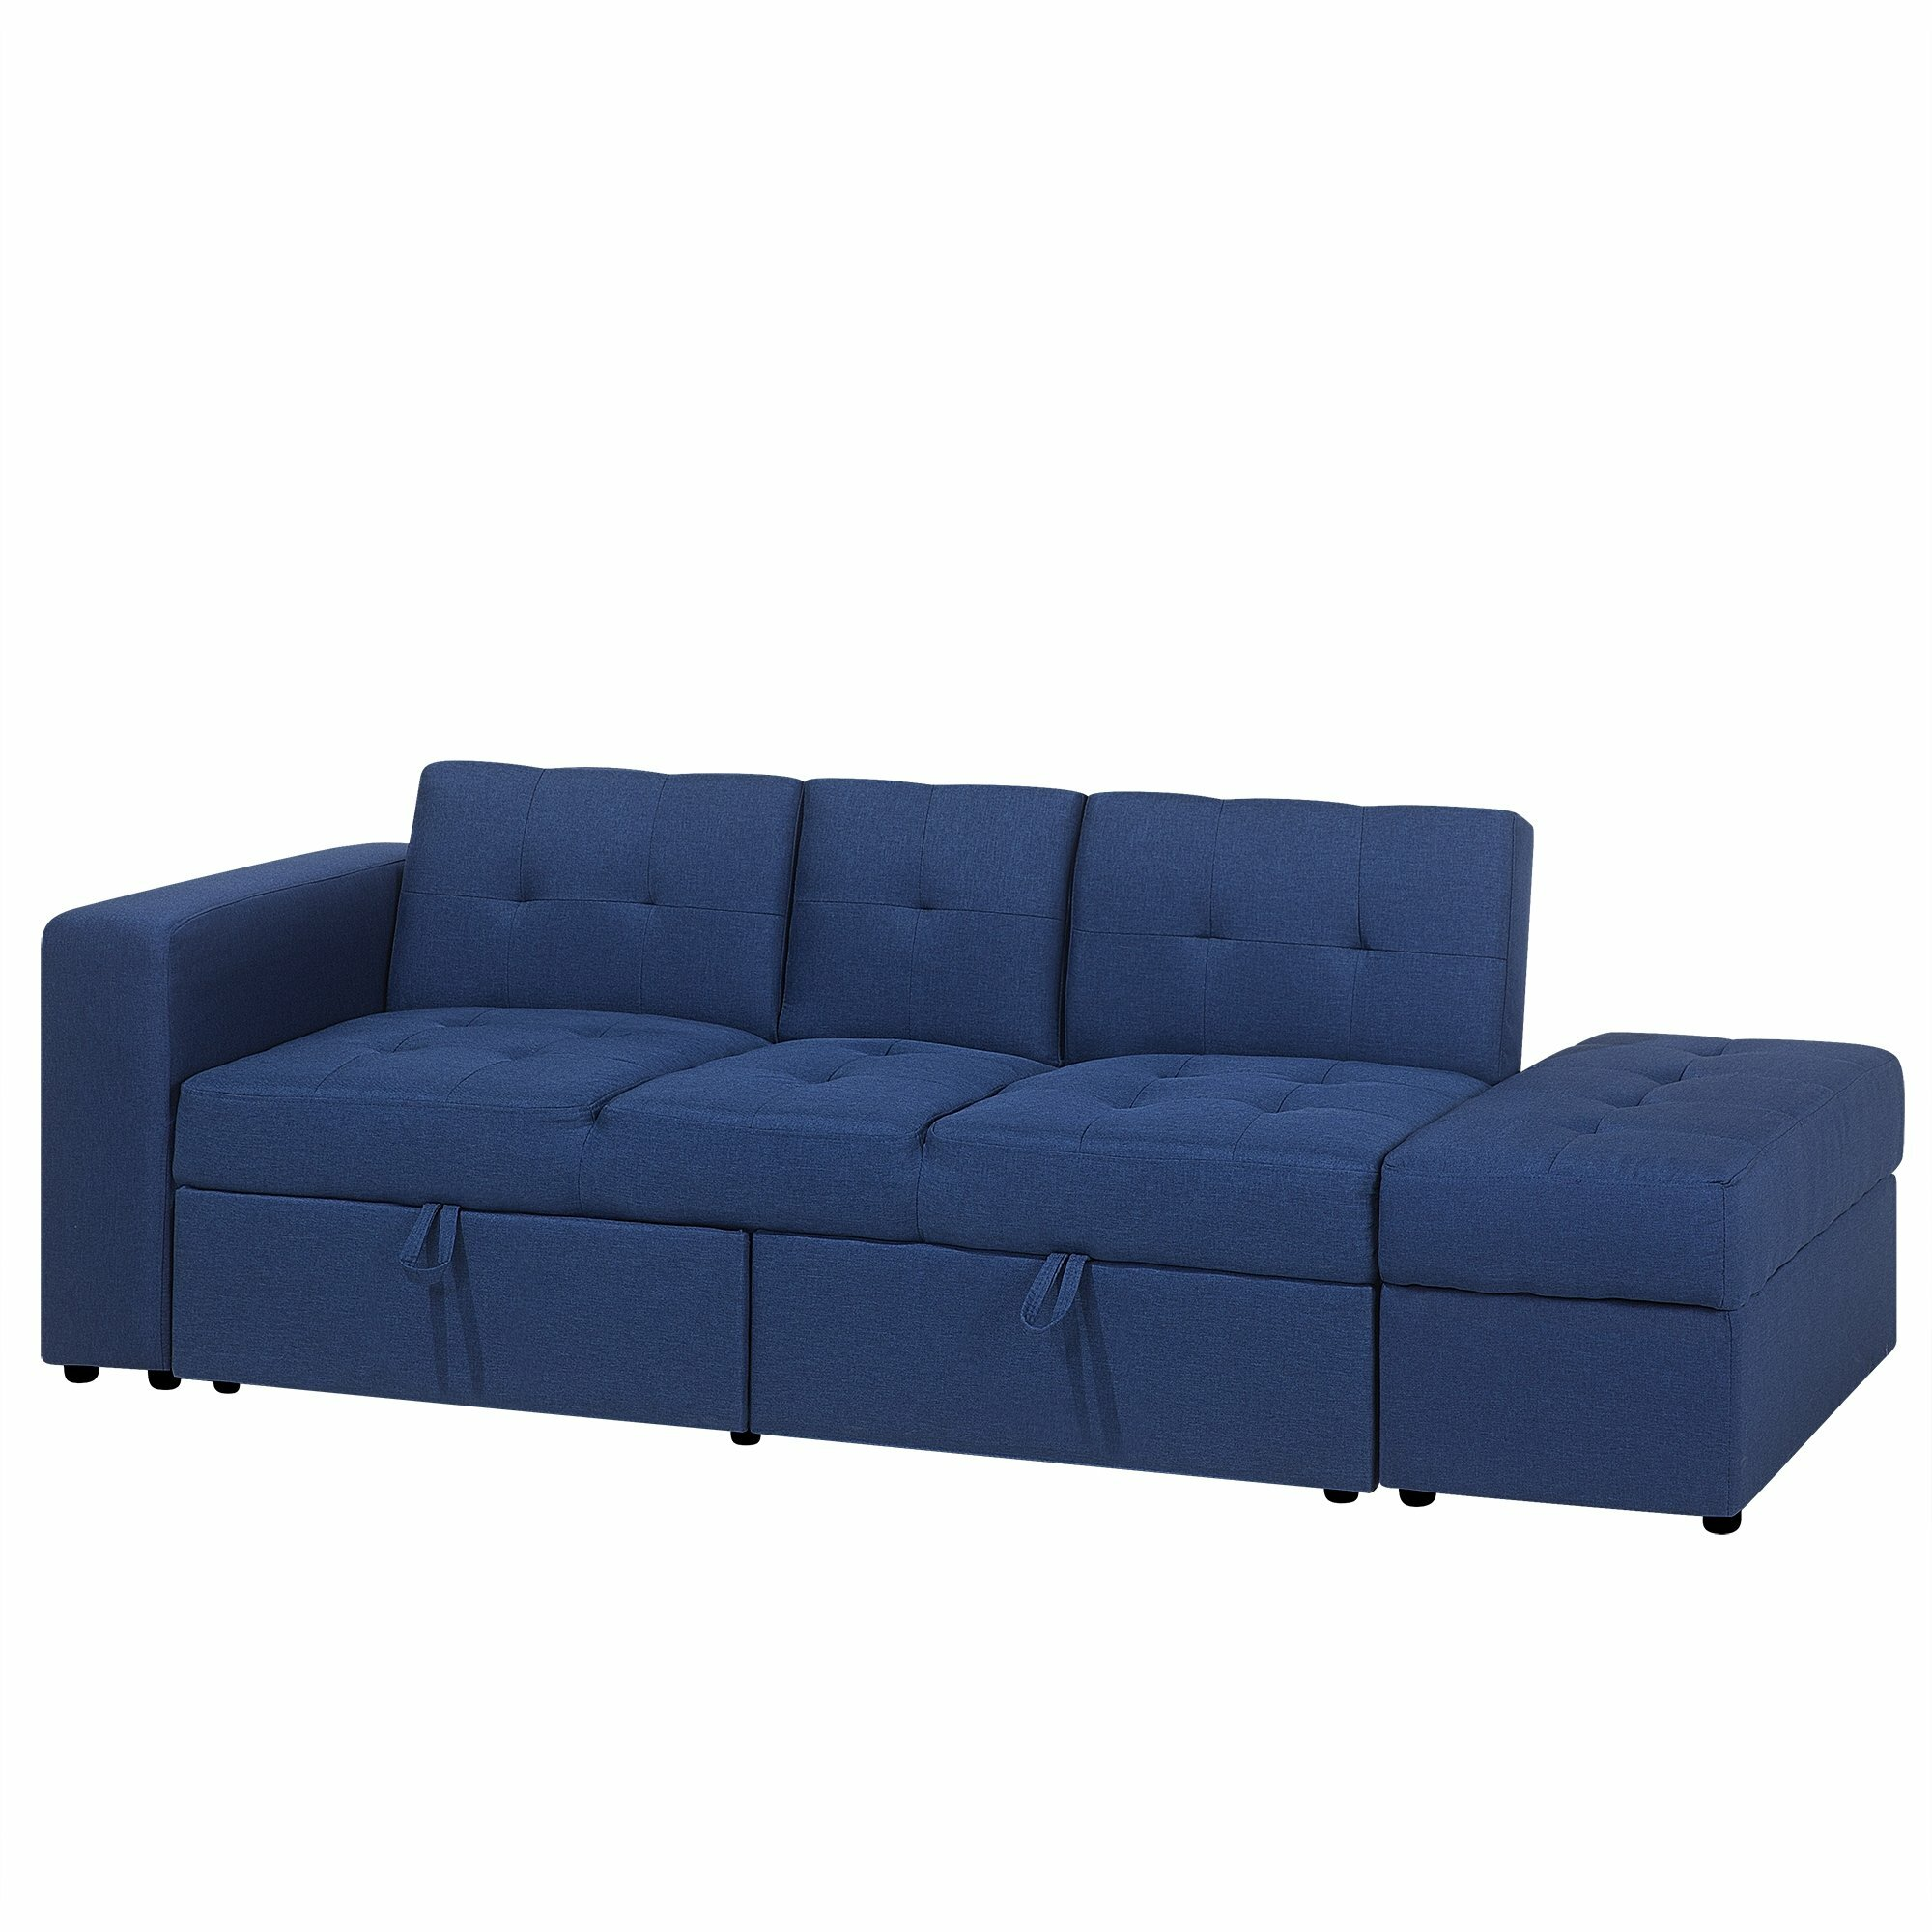 Fantastic Sectional Sofa Bed With Ottoman Light Grey Falster Ocoug Best Dining Table And Chair Ideas Images Ocougorg